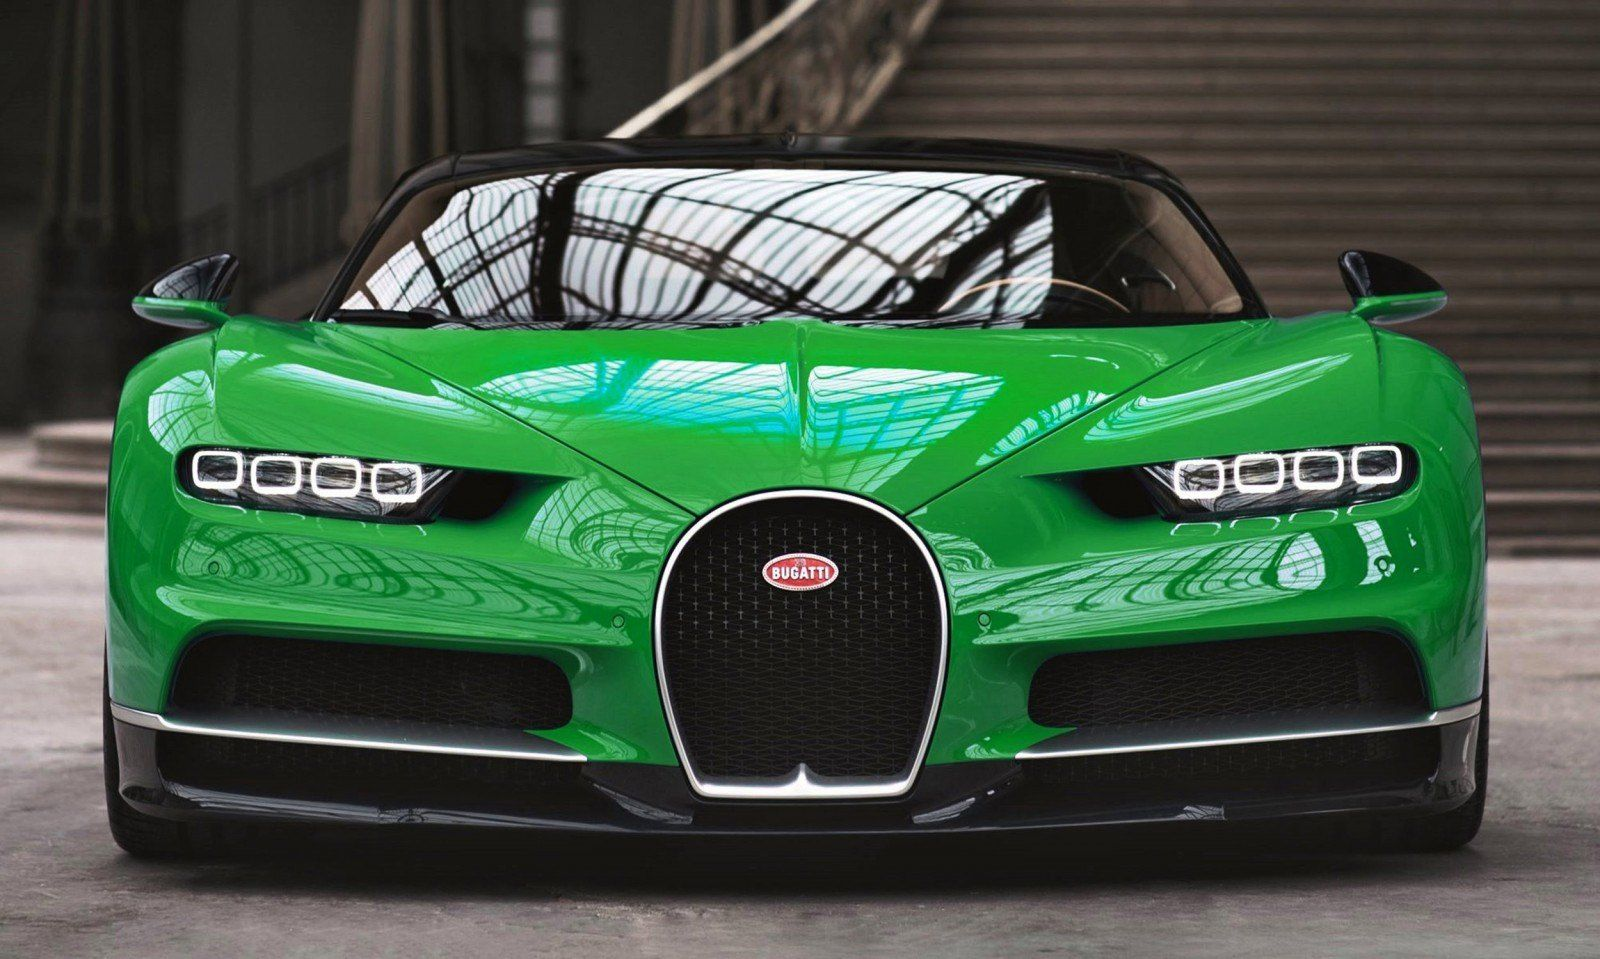 2017 Bugatti Chiron Colors Visualizer 50 Shades Of 300mph Boss Car Revs Daily Com Bugatti Chiron Super Car Bugatti Bugatti Cars